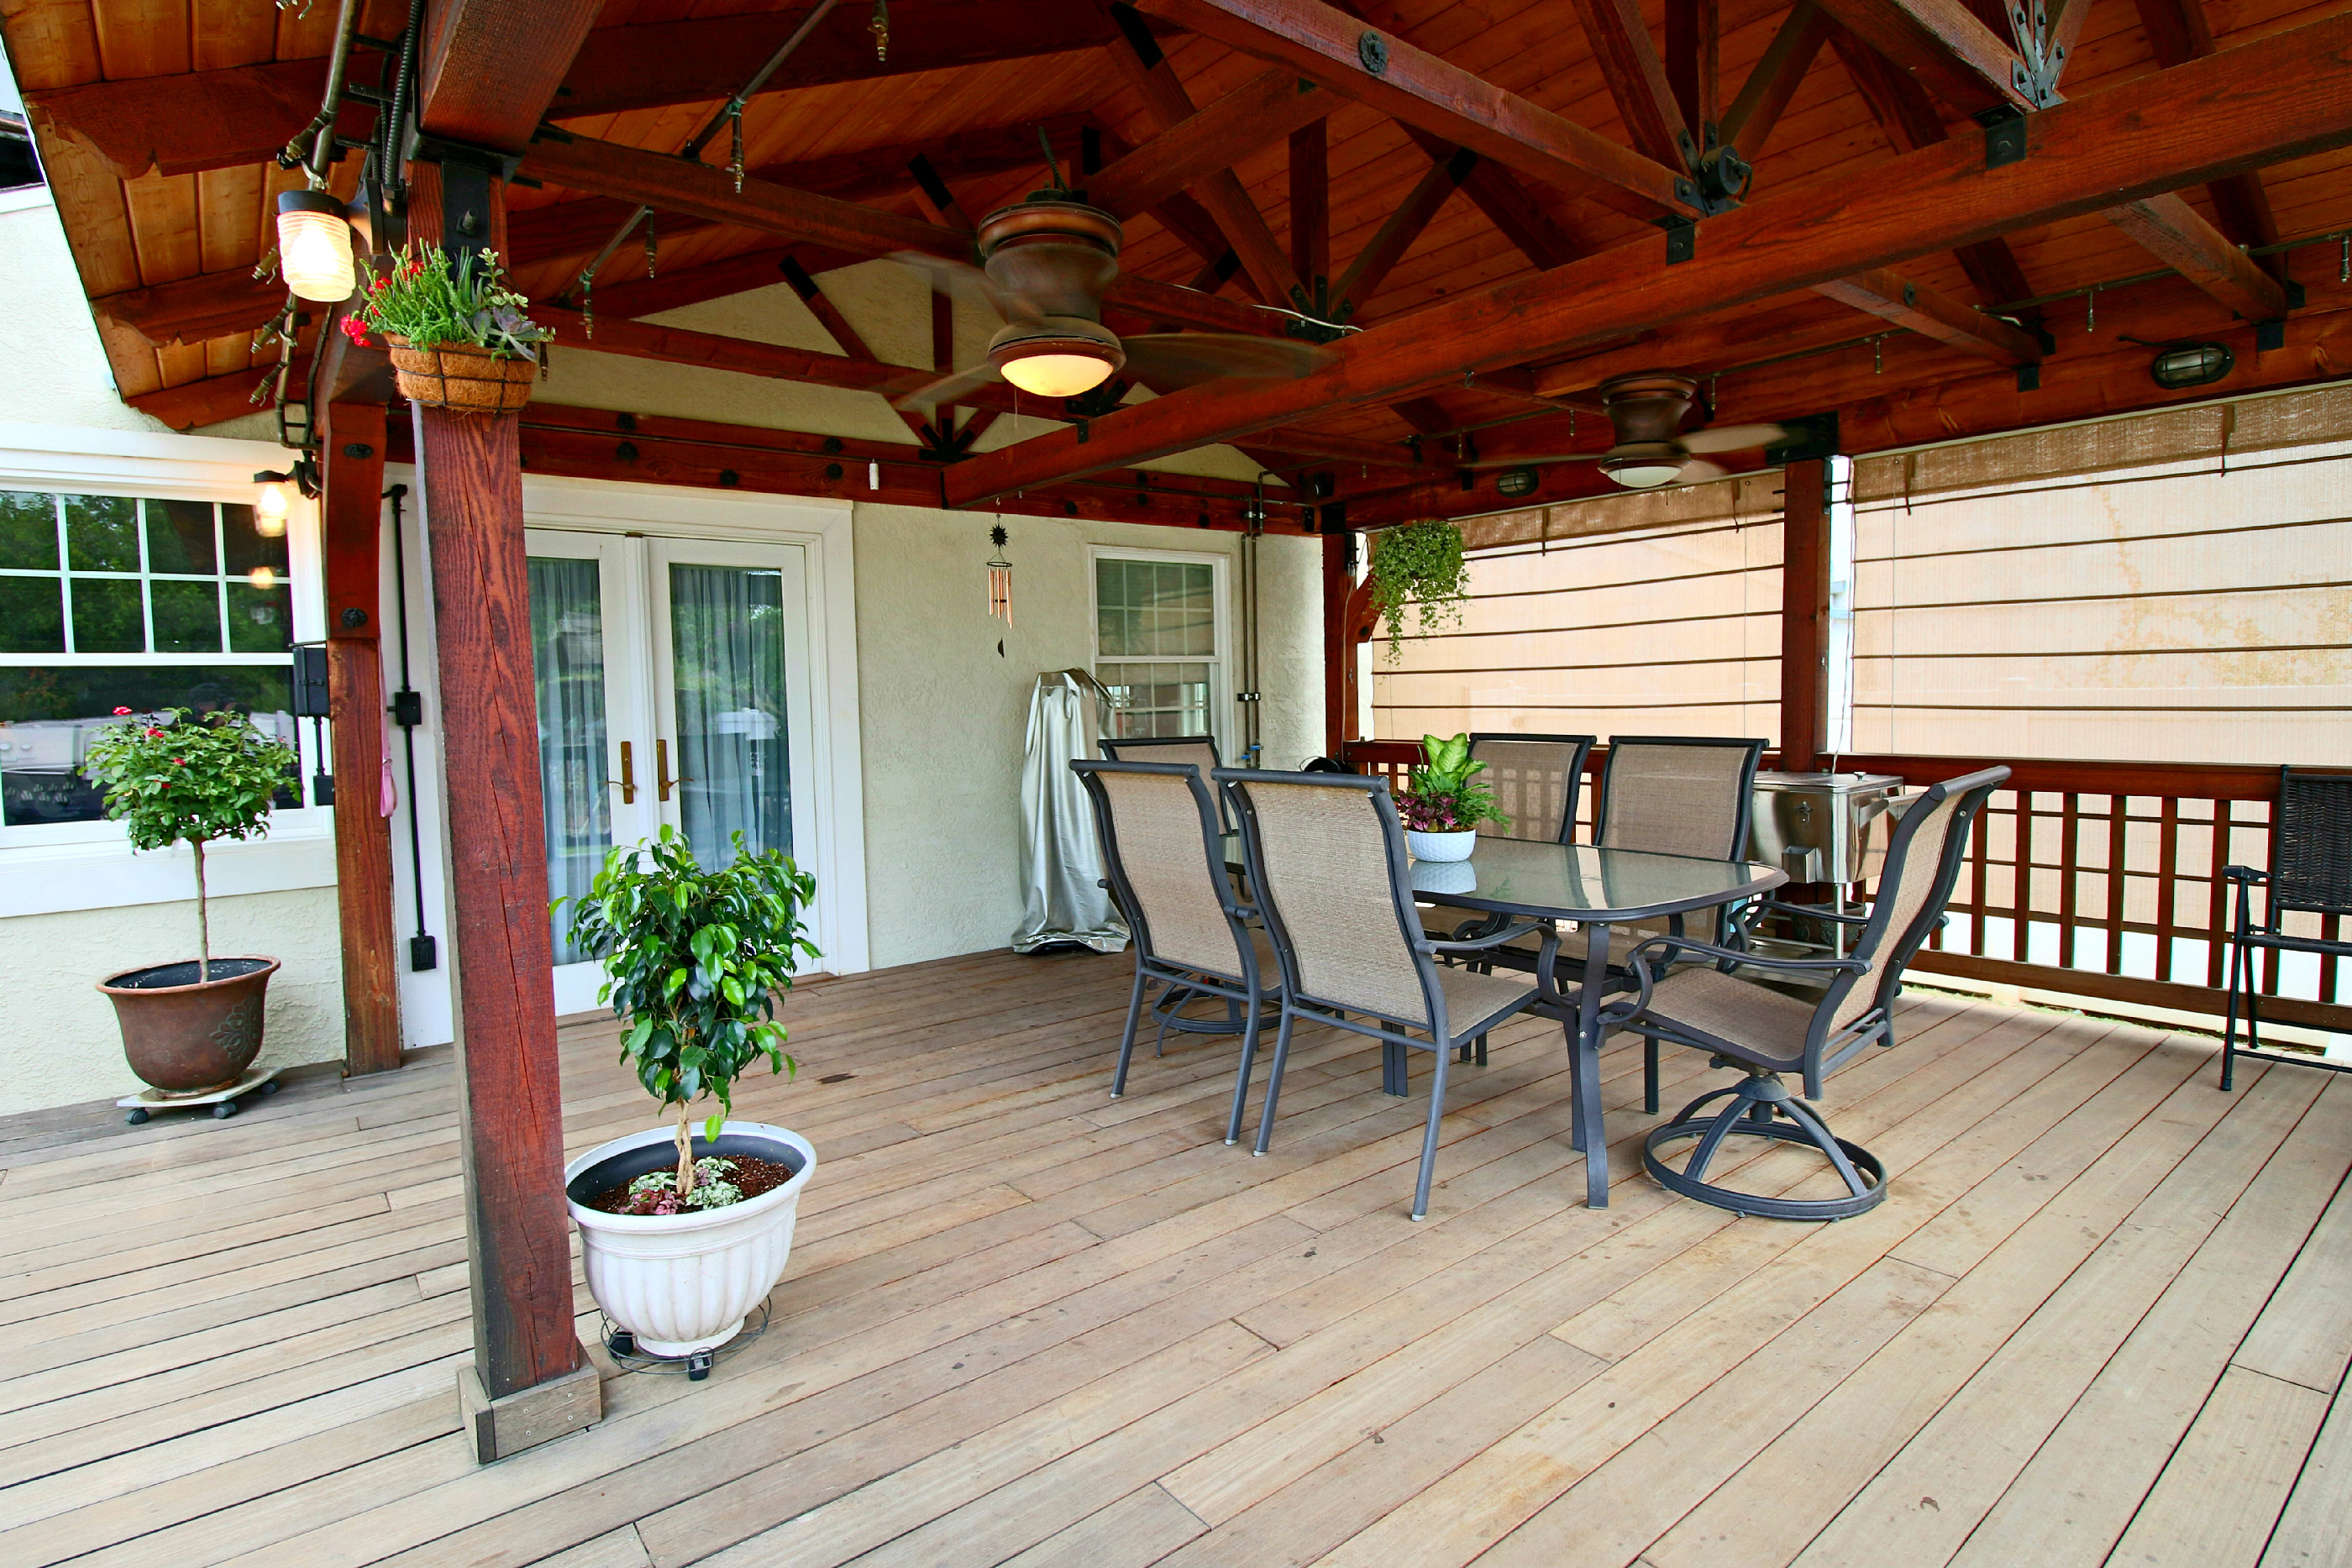 The structure above on Mangaris deck is made with Douglas fir, and the ceiling is tongue and groove Spruce. Copper pipe misters and lighting as well.